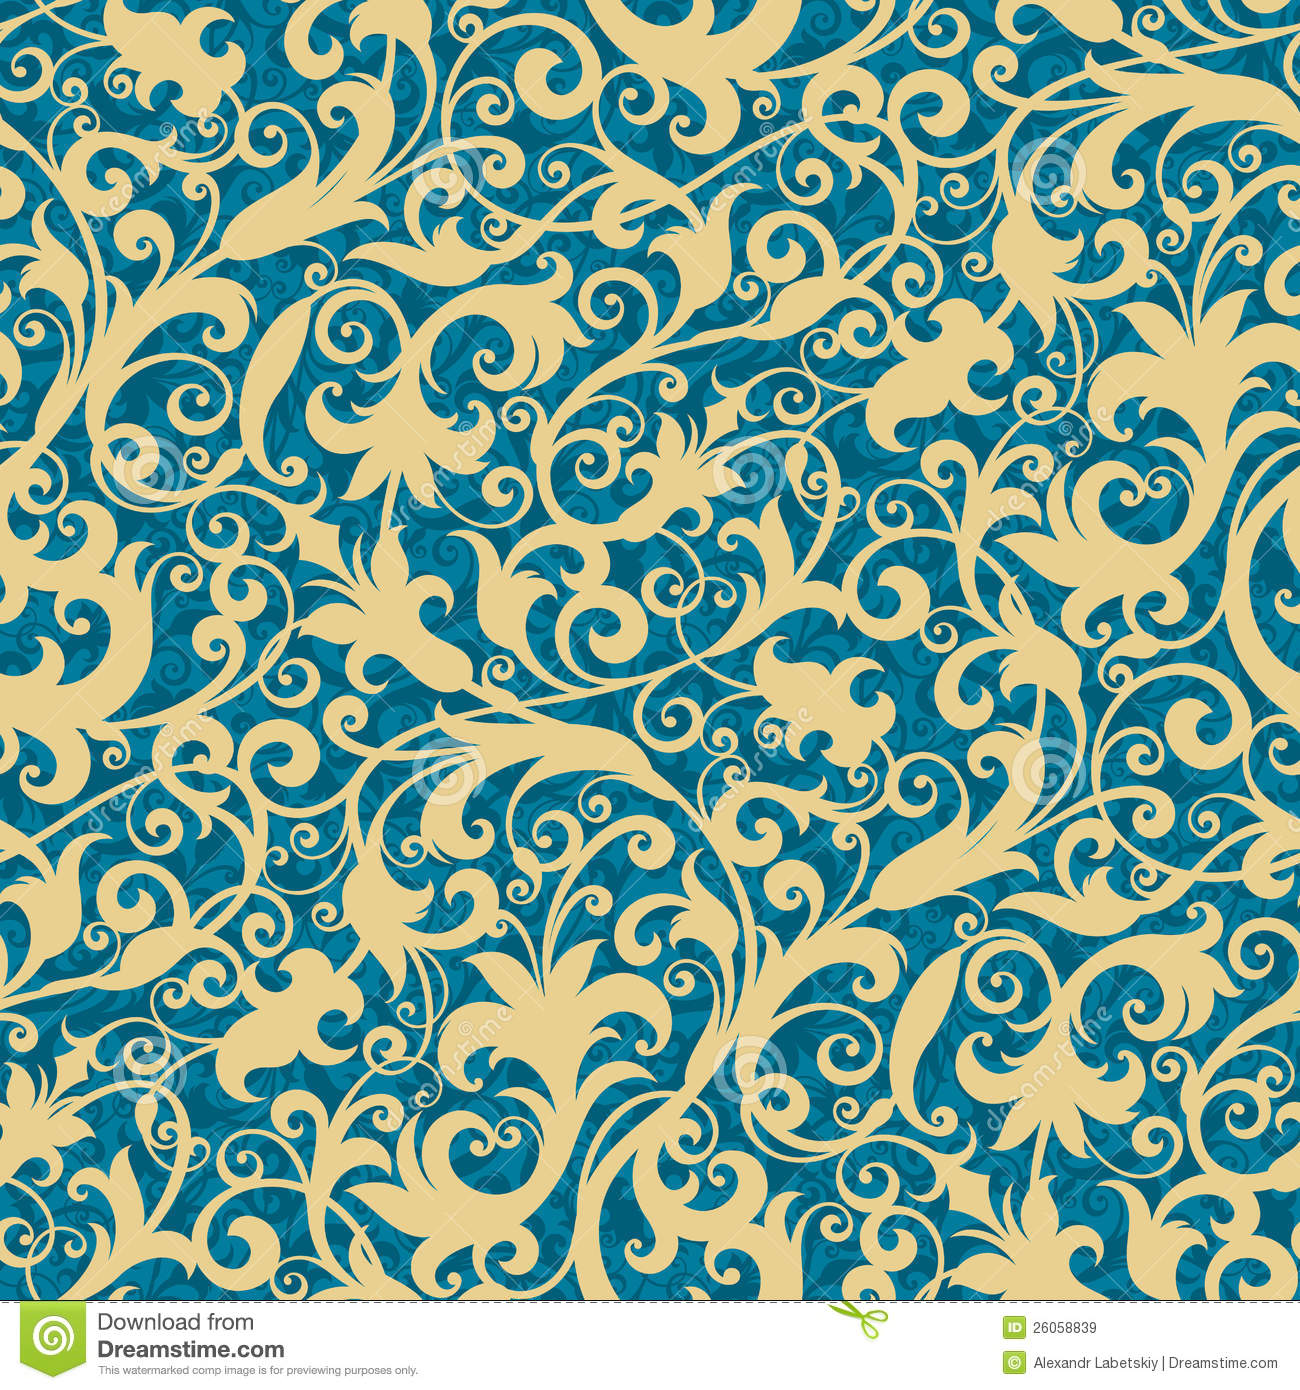 Floral Wallpaper Stock Vector Illustration Of Repeating